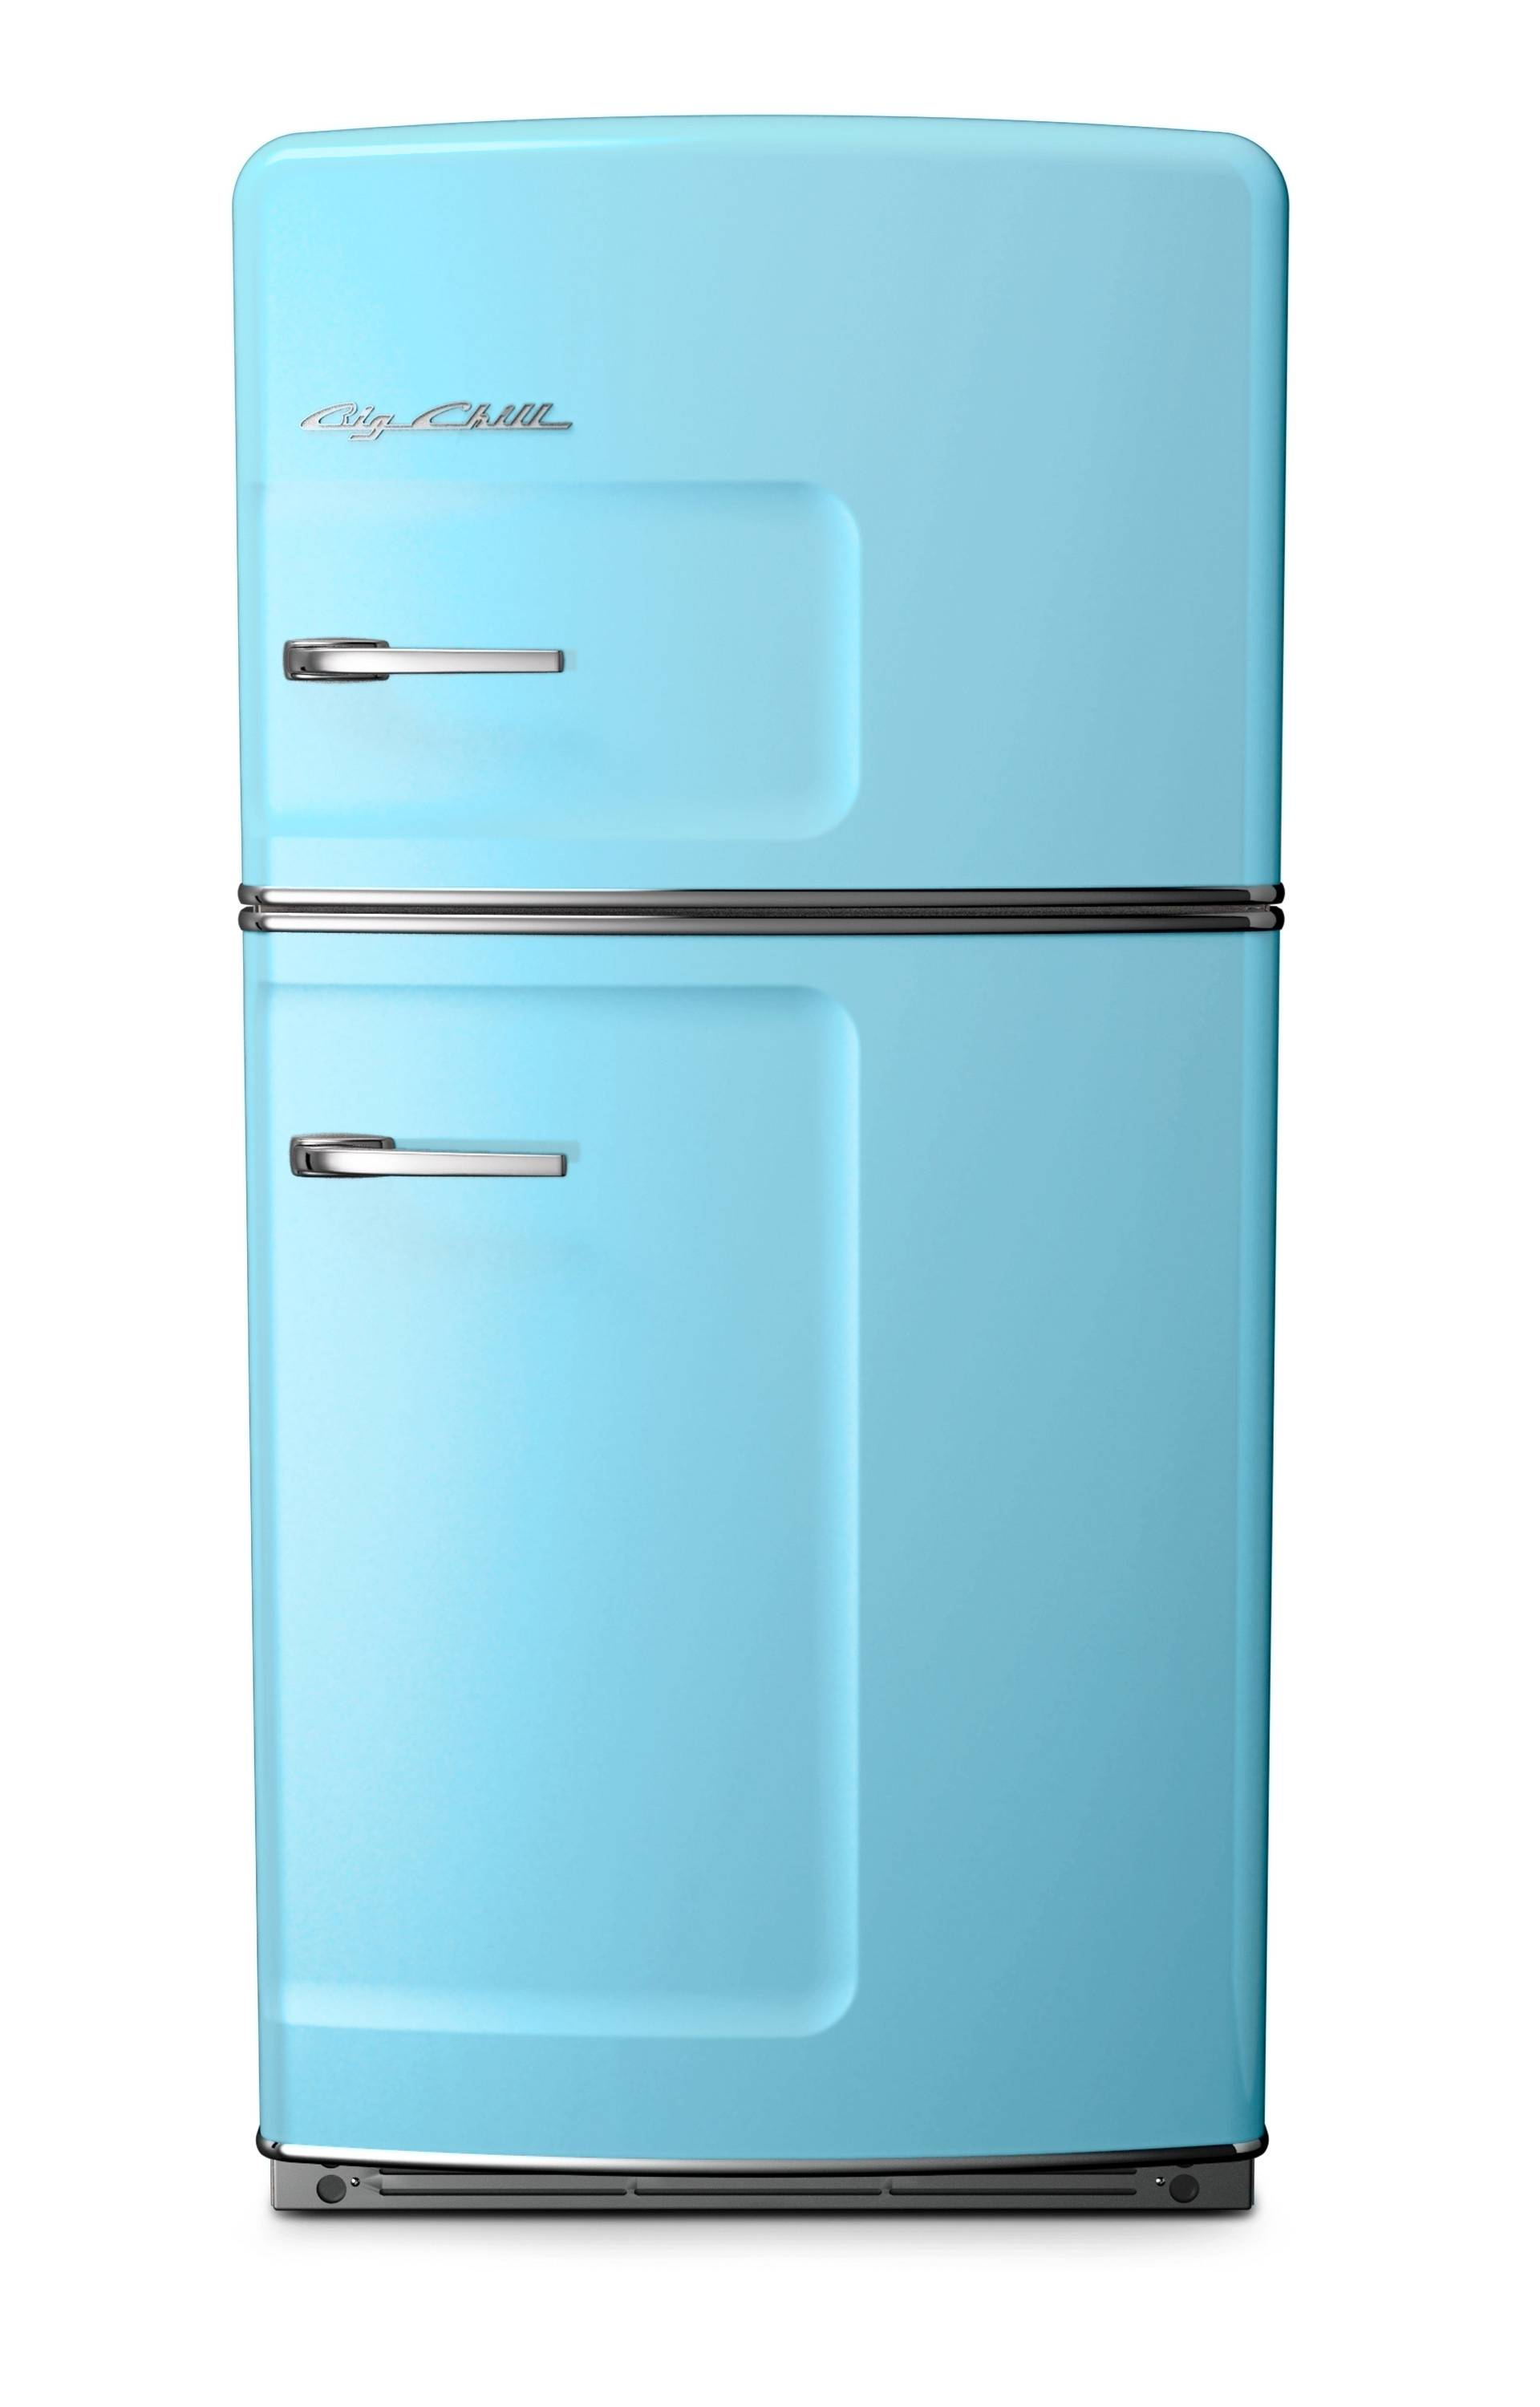 With strong color trending in kitchens, Big Chill's vibrant hues in fridges -- like this one in beach blue -- ovens and range hoods hit the style mark. As a pop of color in an otherwise low key kitchen, or as part of an overall exuberant space, appliances like these, particularly with some retro details, stand out from the standard stainless offerings.